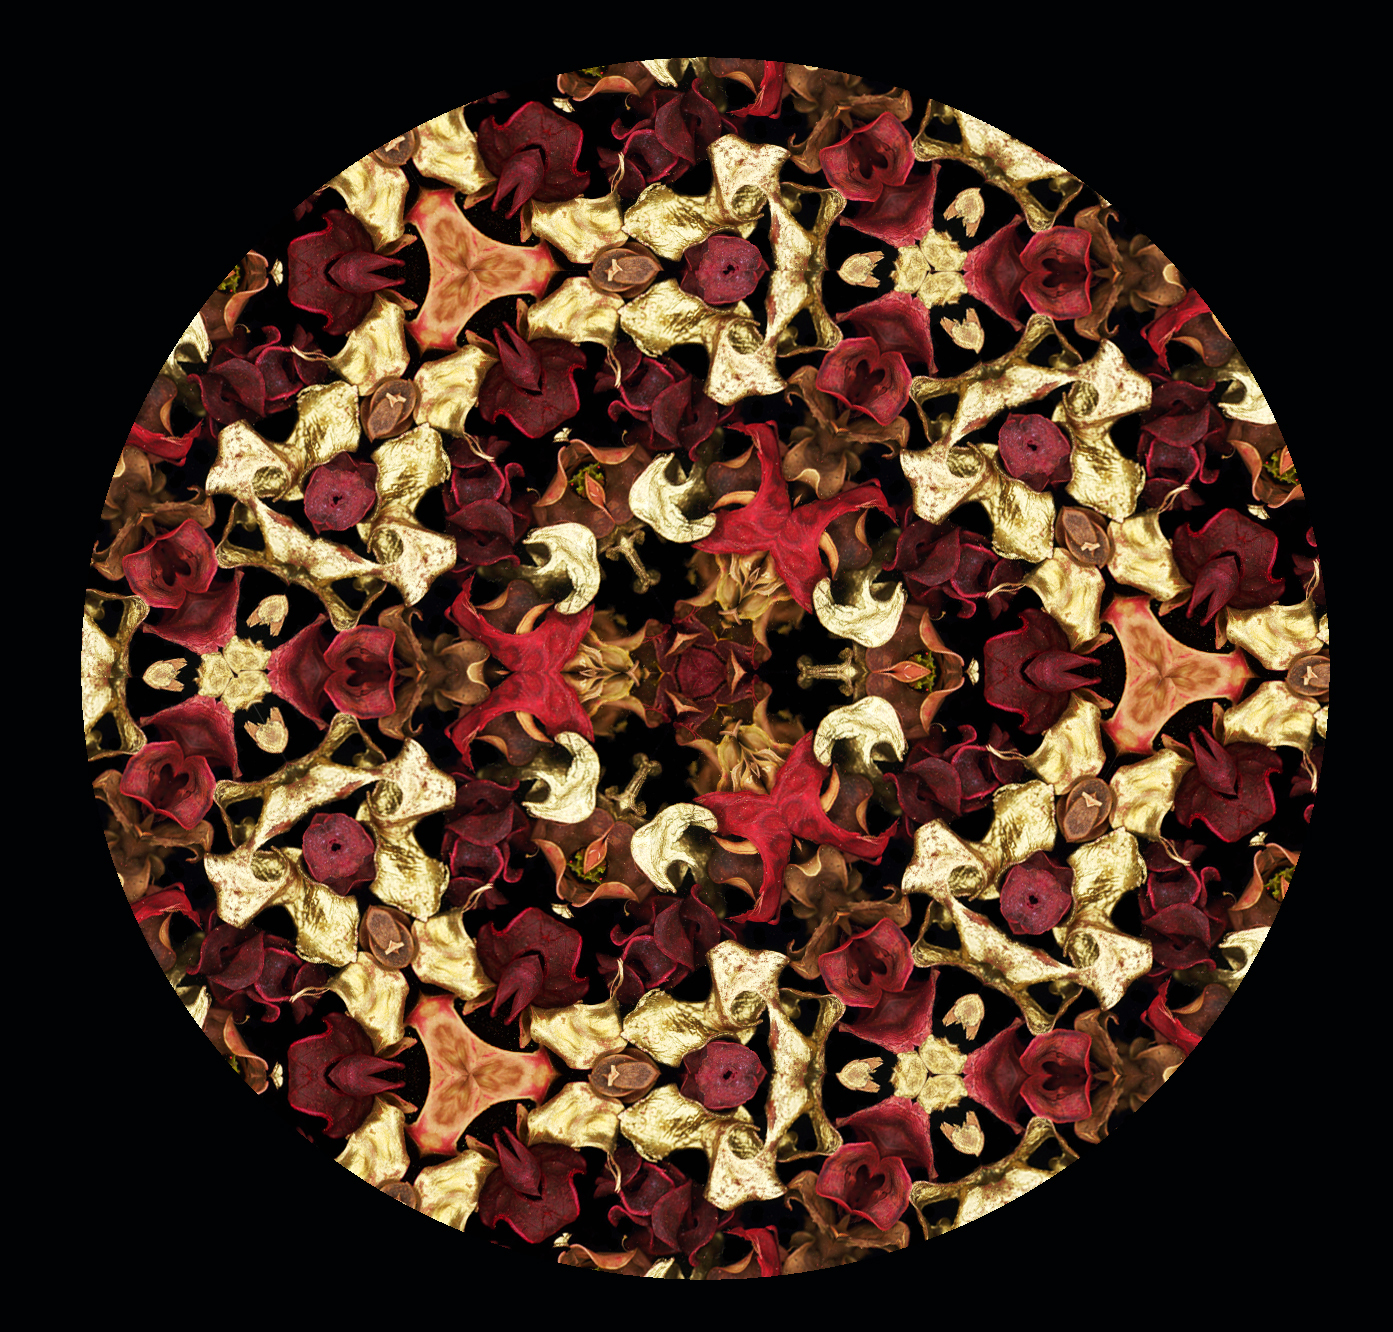 Kaleidoscope of petals